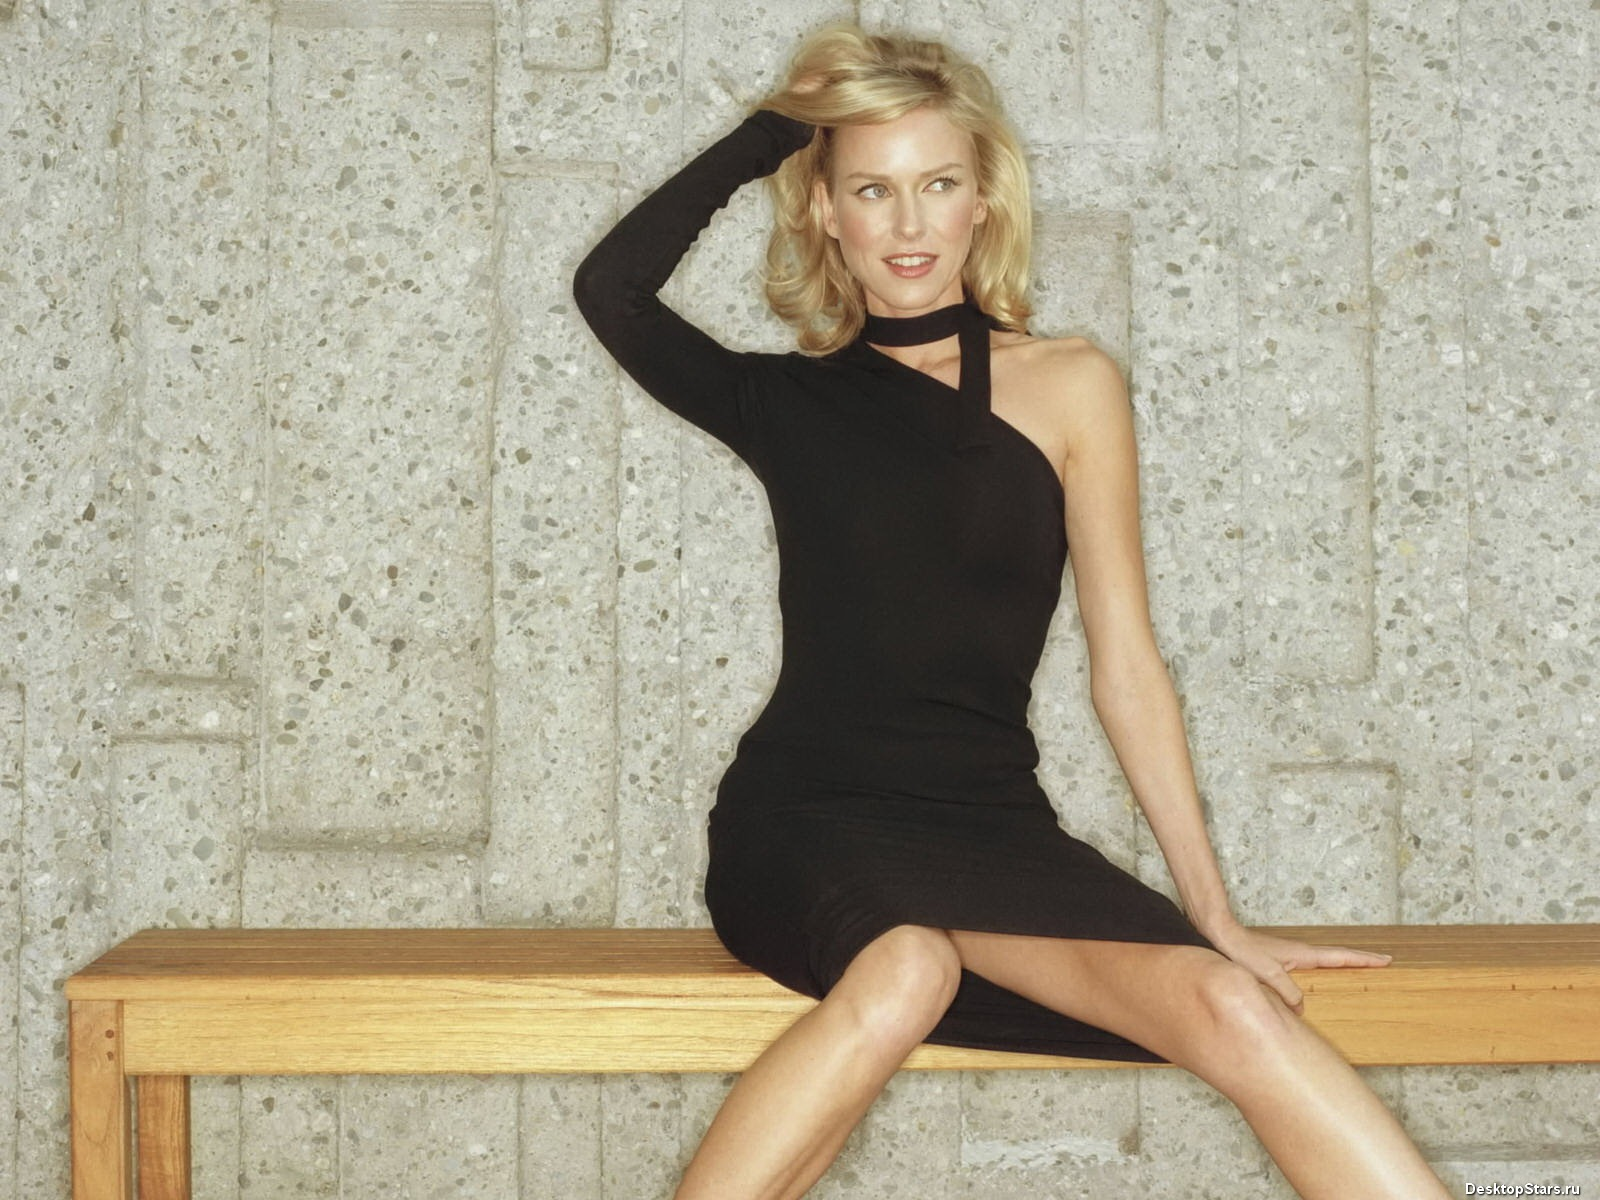 Naomi Watts #028 - 1600x1200 Wallpapers Pictures Photos Images